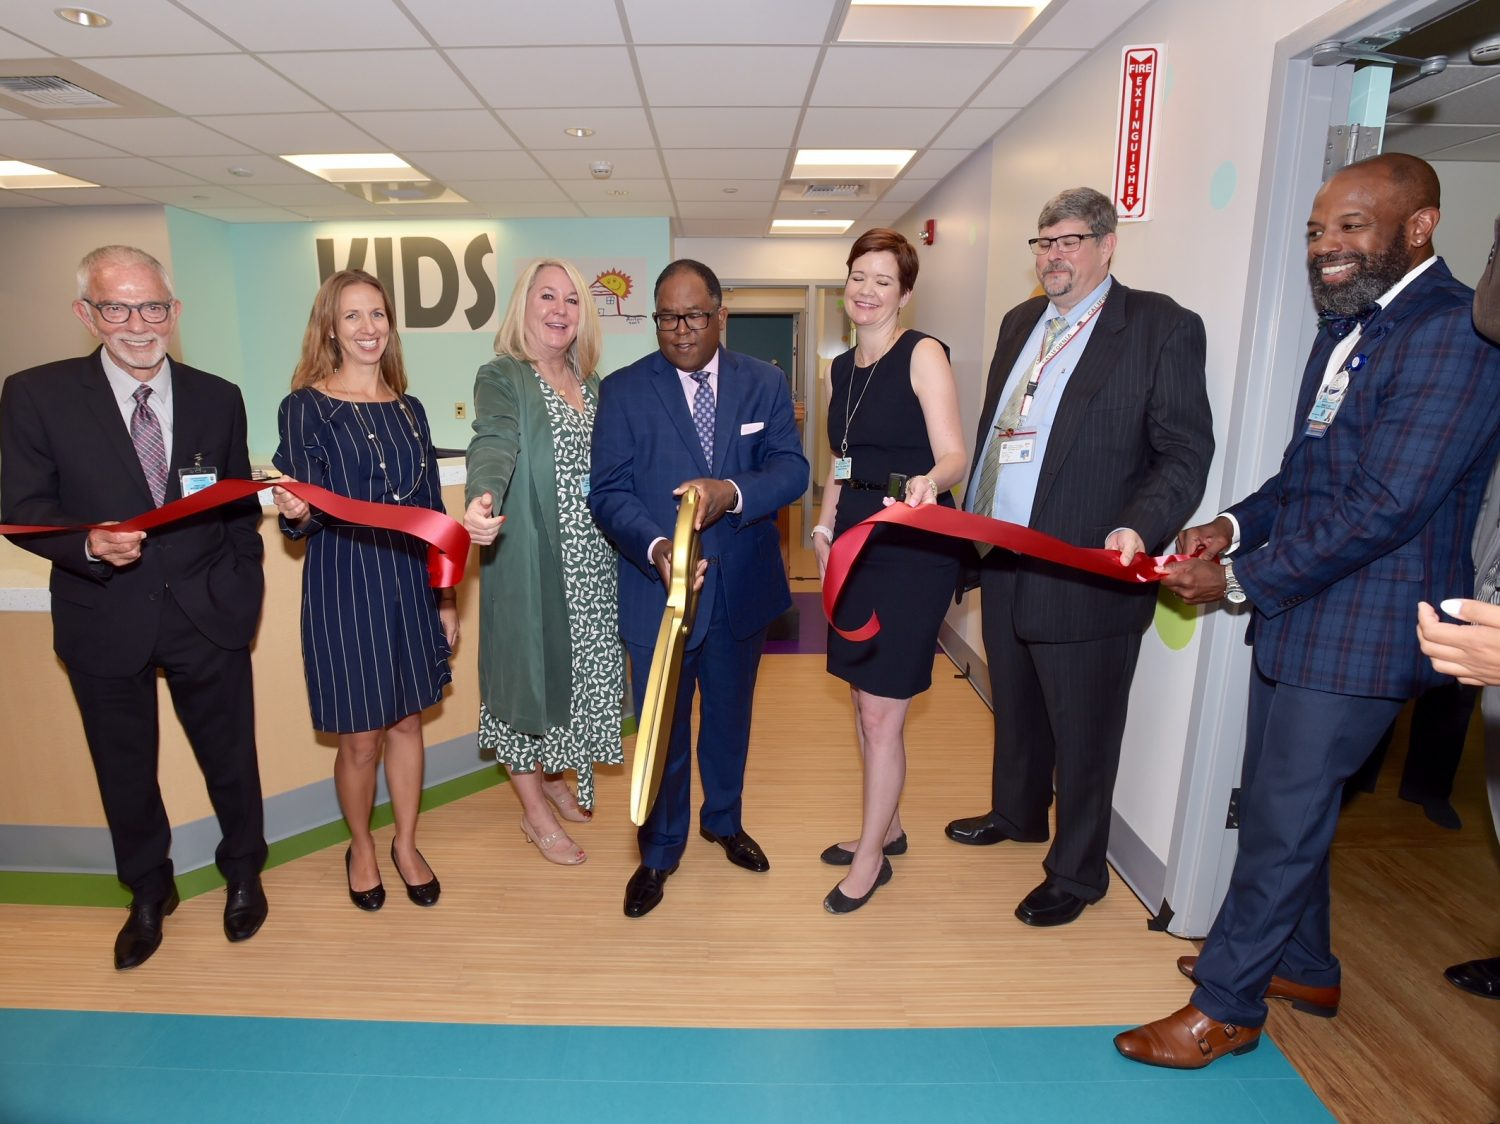 Ribbon Cutting for Harbor UCLA Medical Center Kids Hub